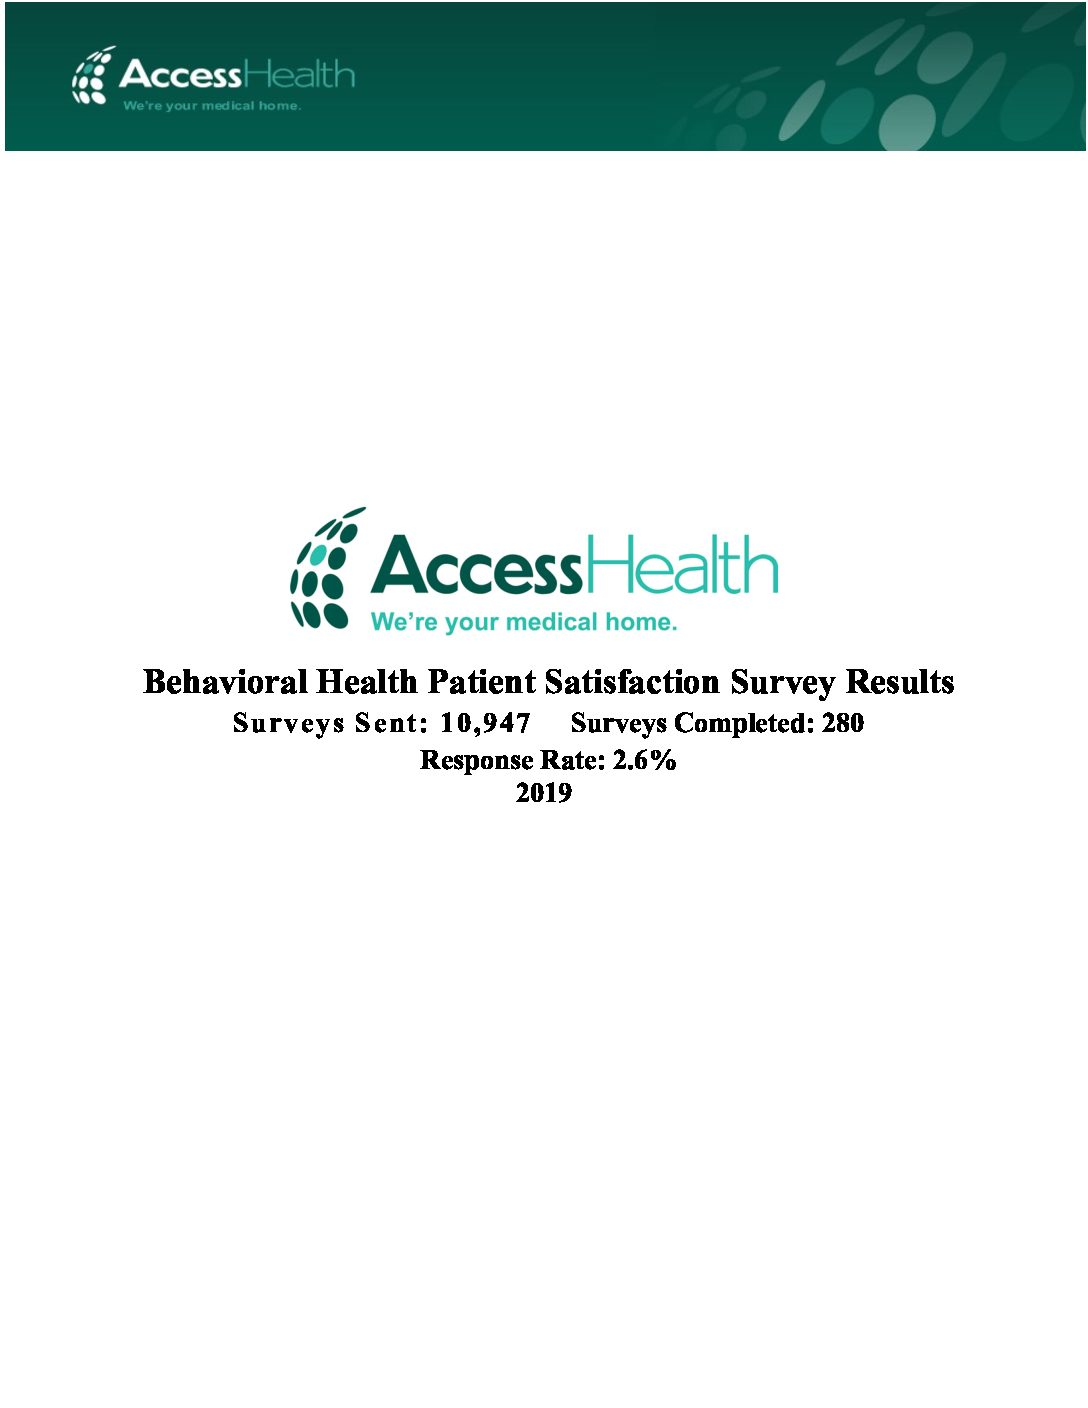 2019 Behavioral Health Patient Satisfaction Survey Results